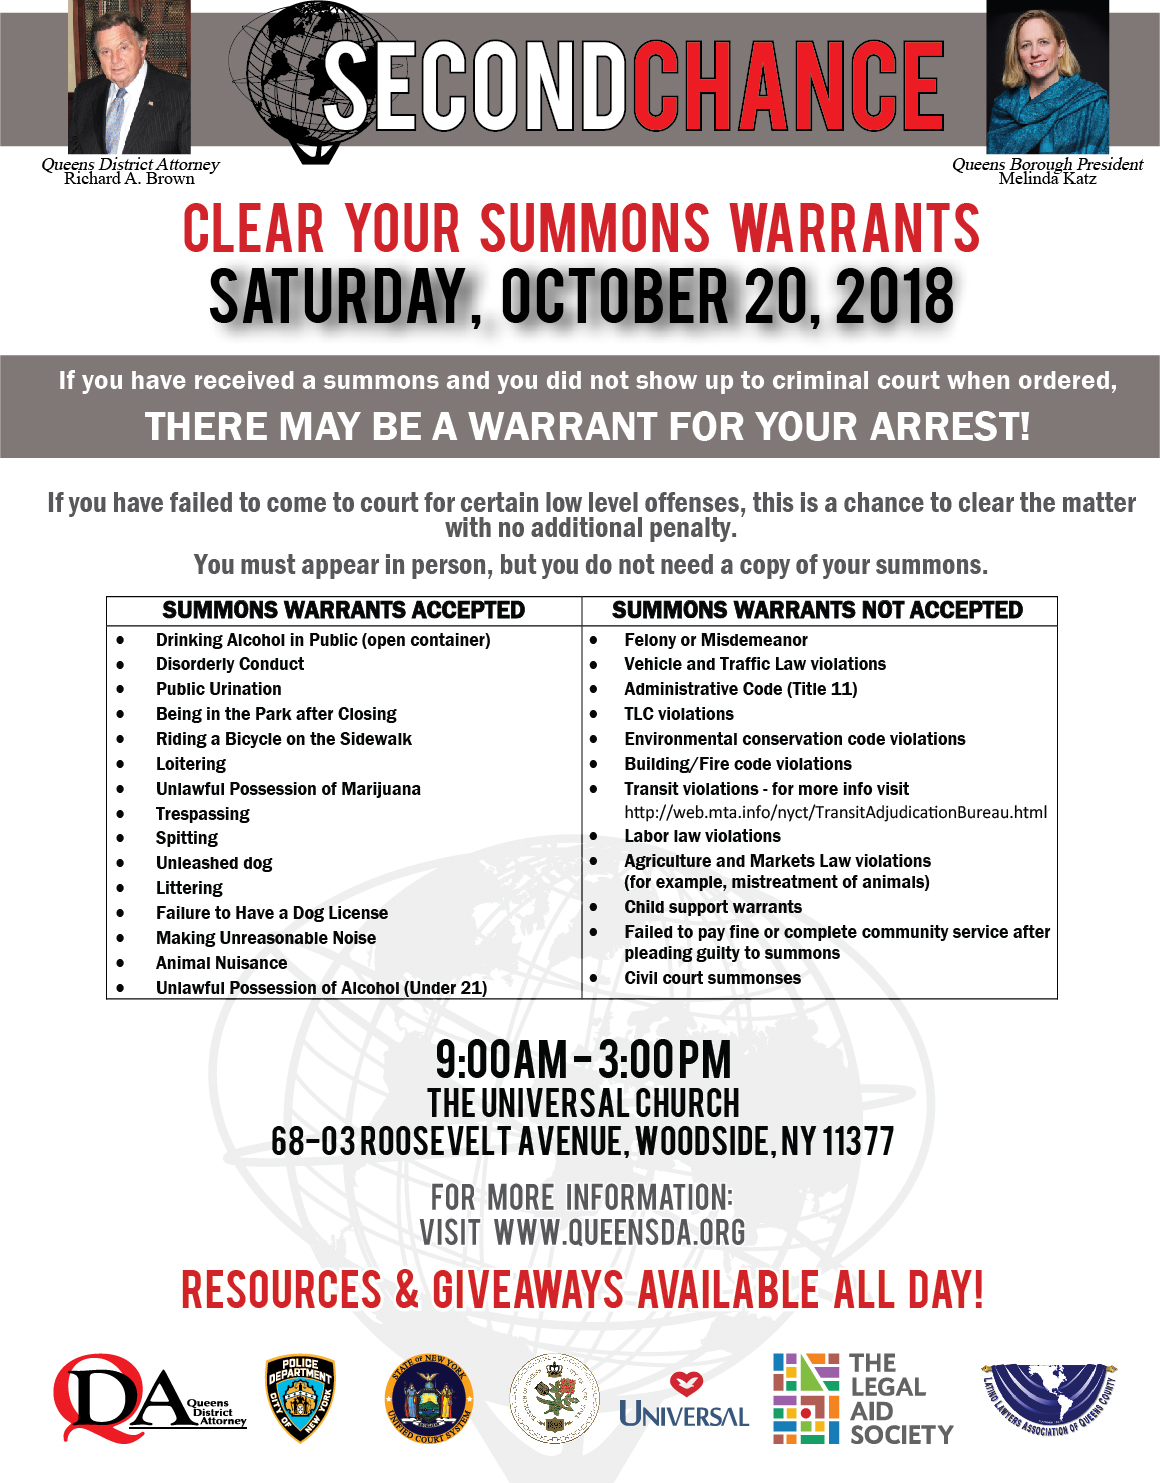 Warrant Clearing Offers 'Second Chance' For Those Who First Show Up